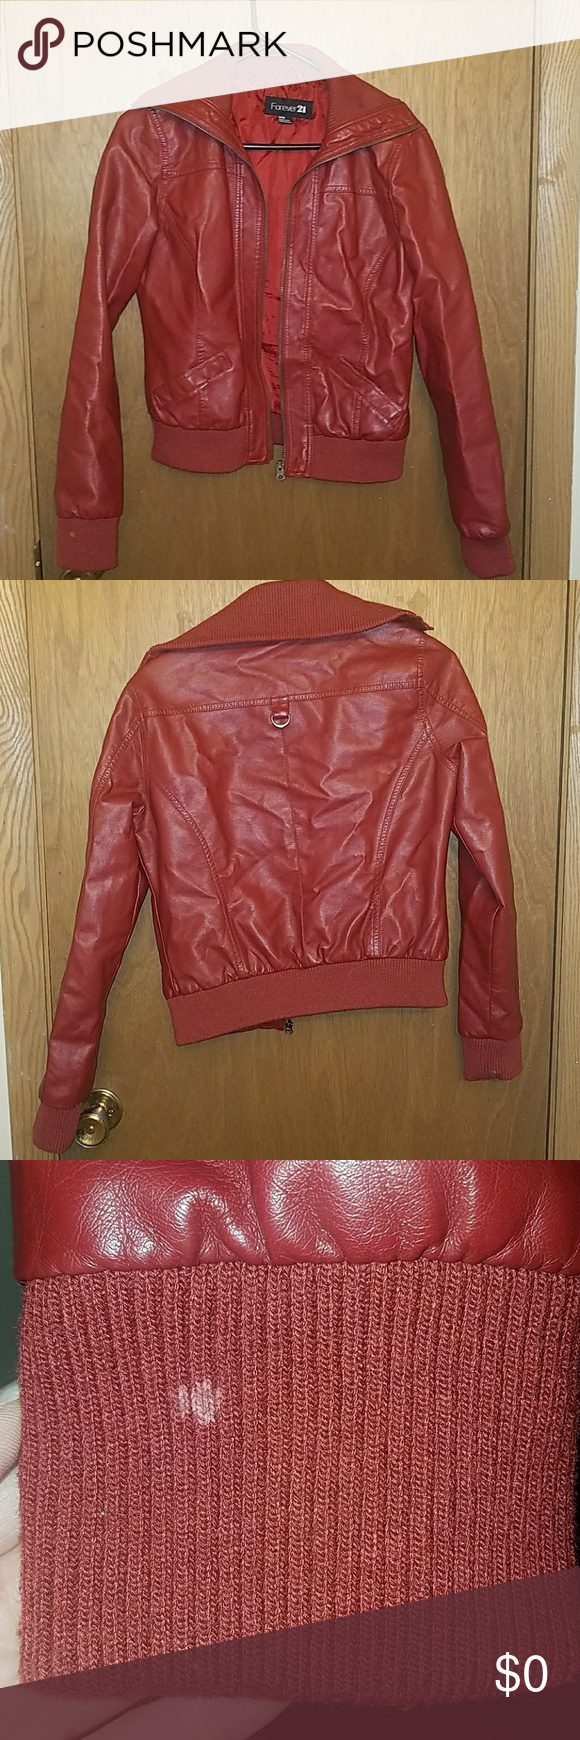 Red Leather Jacket Red Leather Jacket from Forever 21